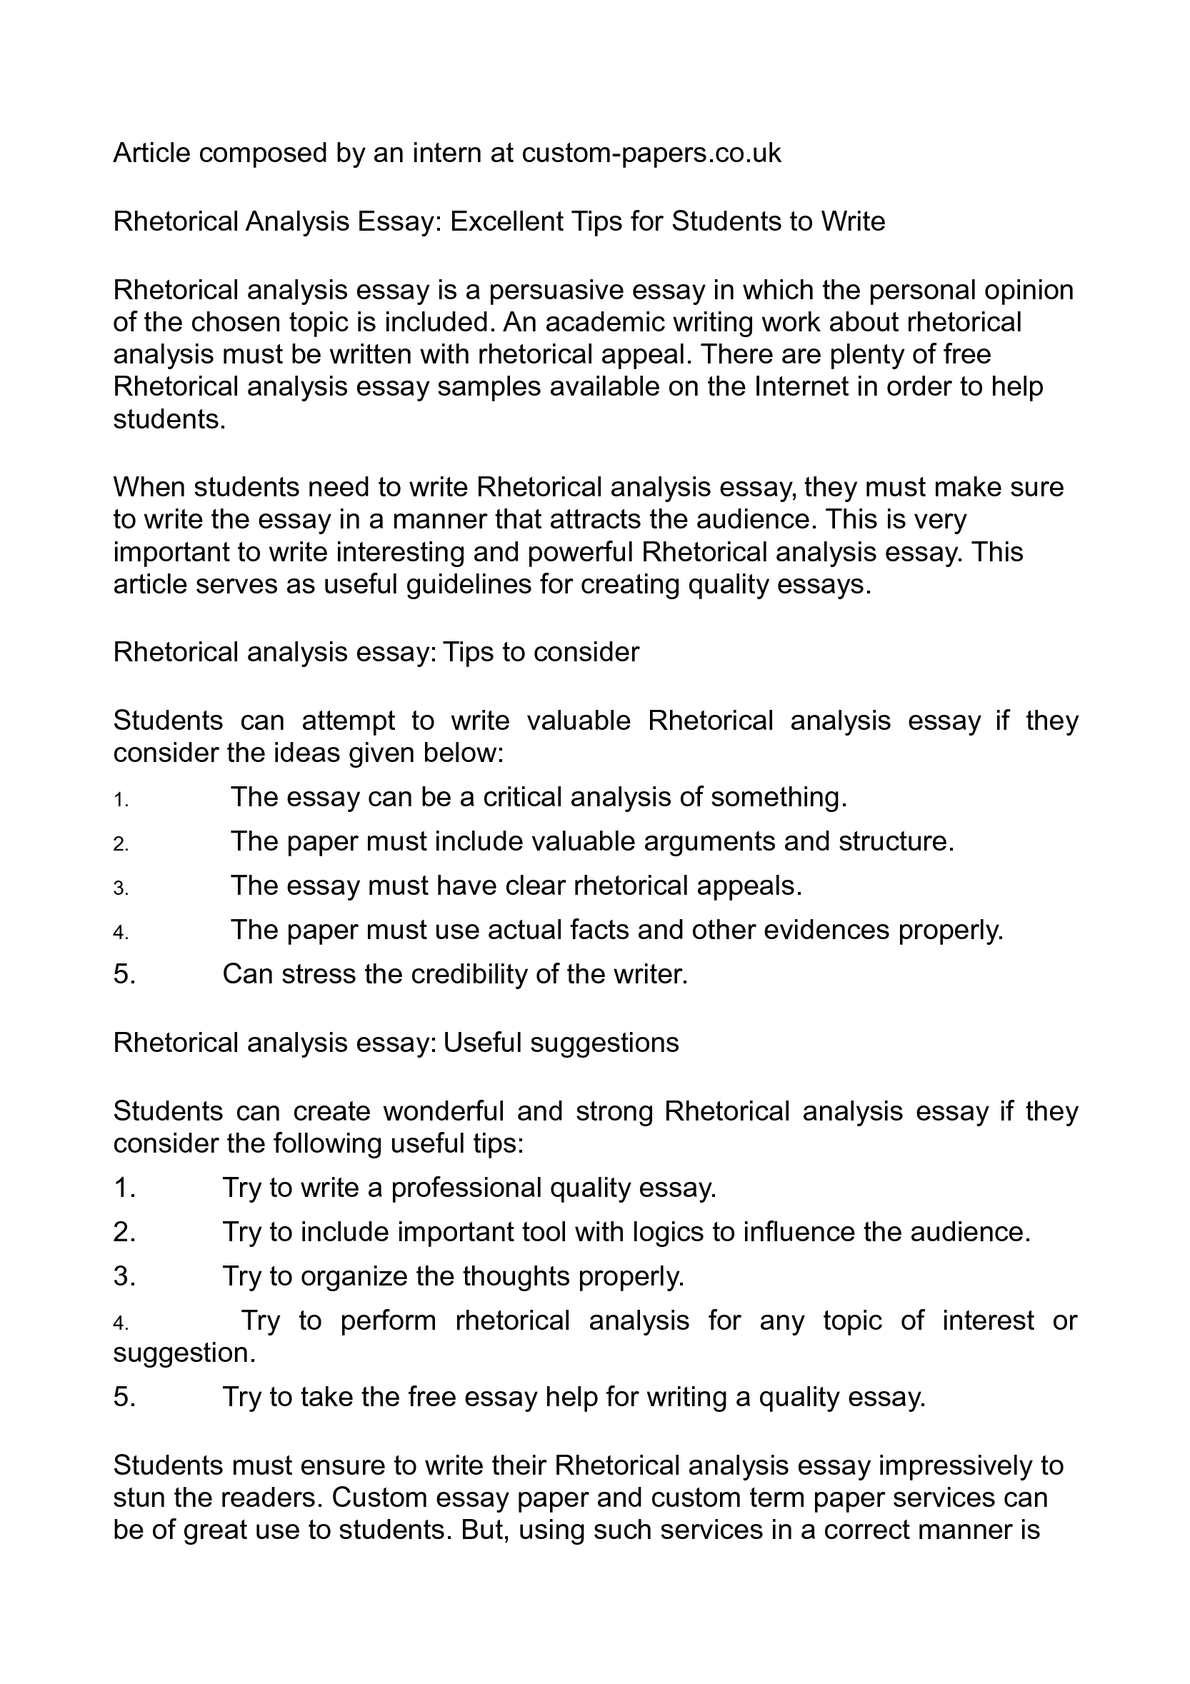 023 How To Start Rhetorical Analysis Writing Essay Outline Ap Engli Conclusion Device Visual Rhetoric Sample Example English Strategies Worksheet